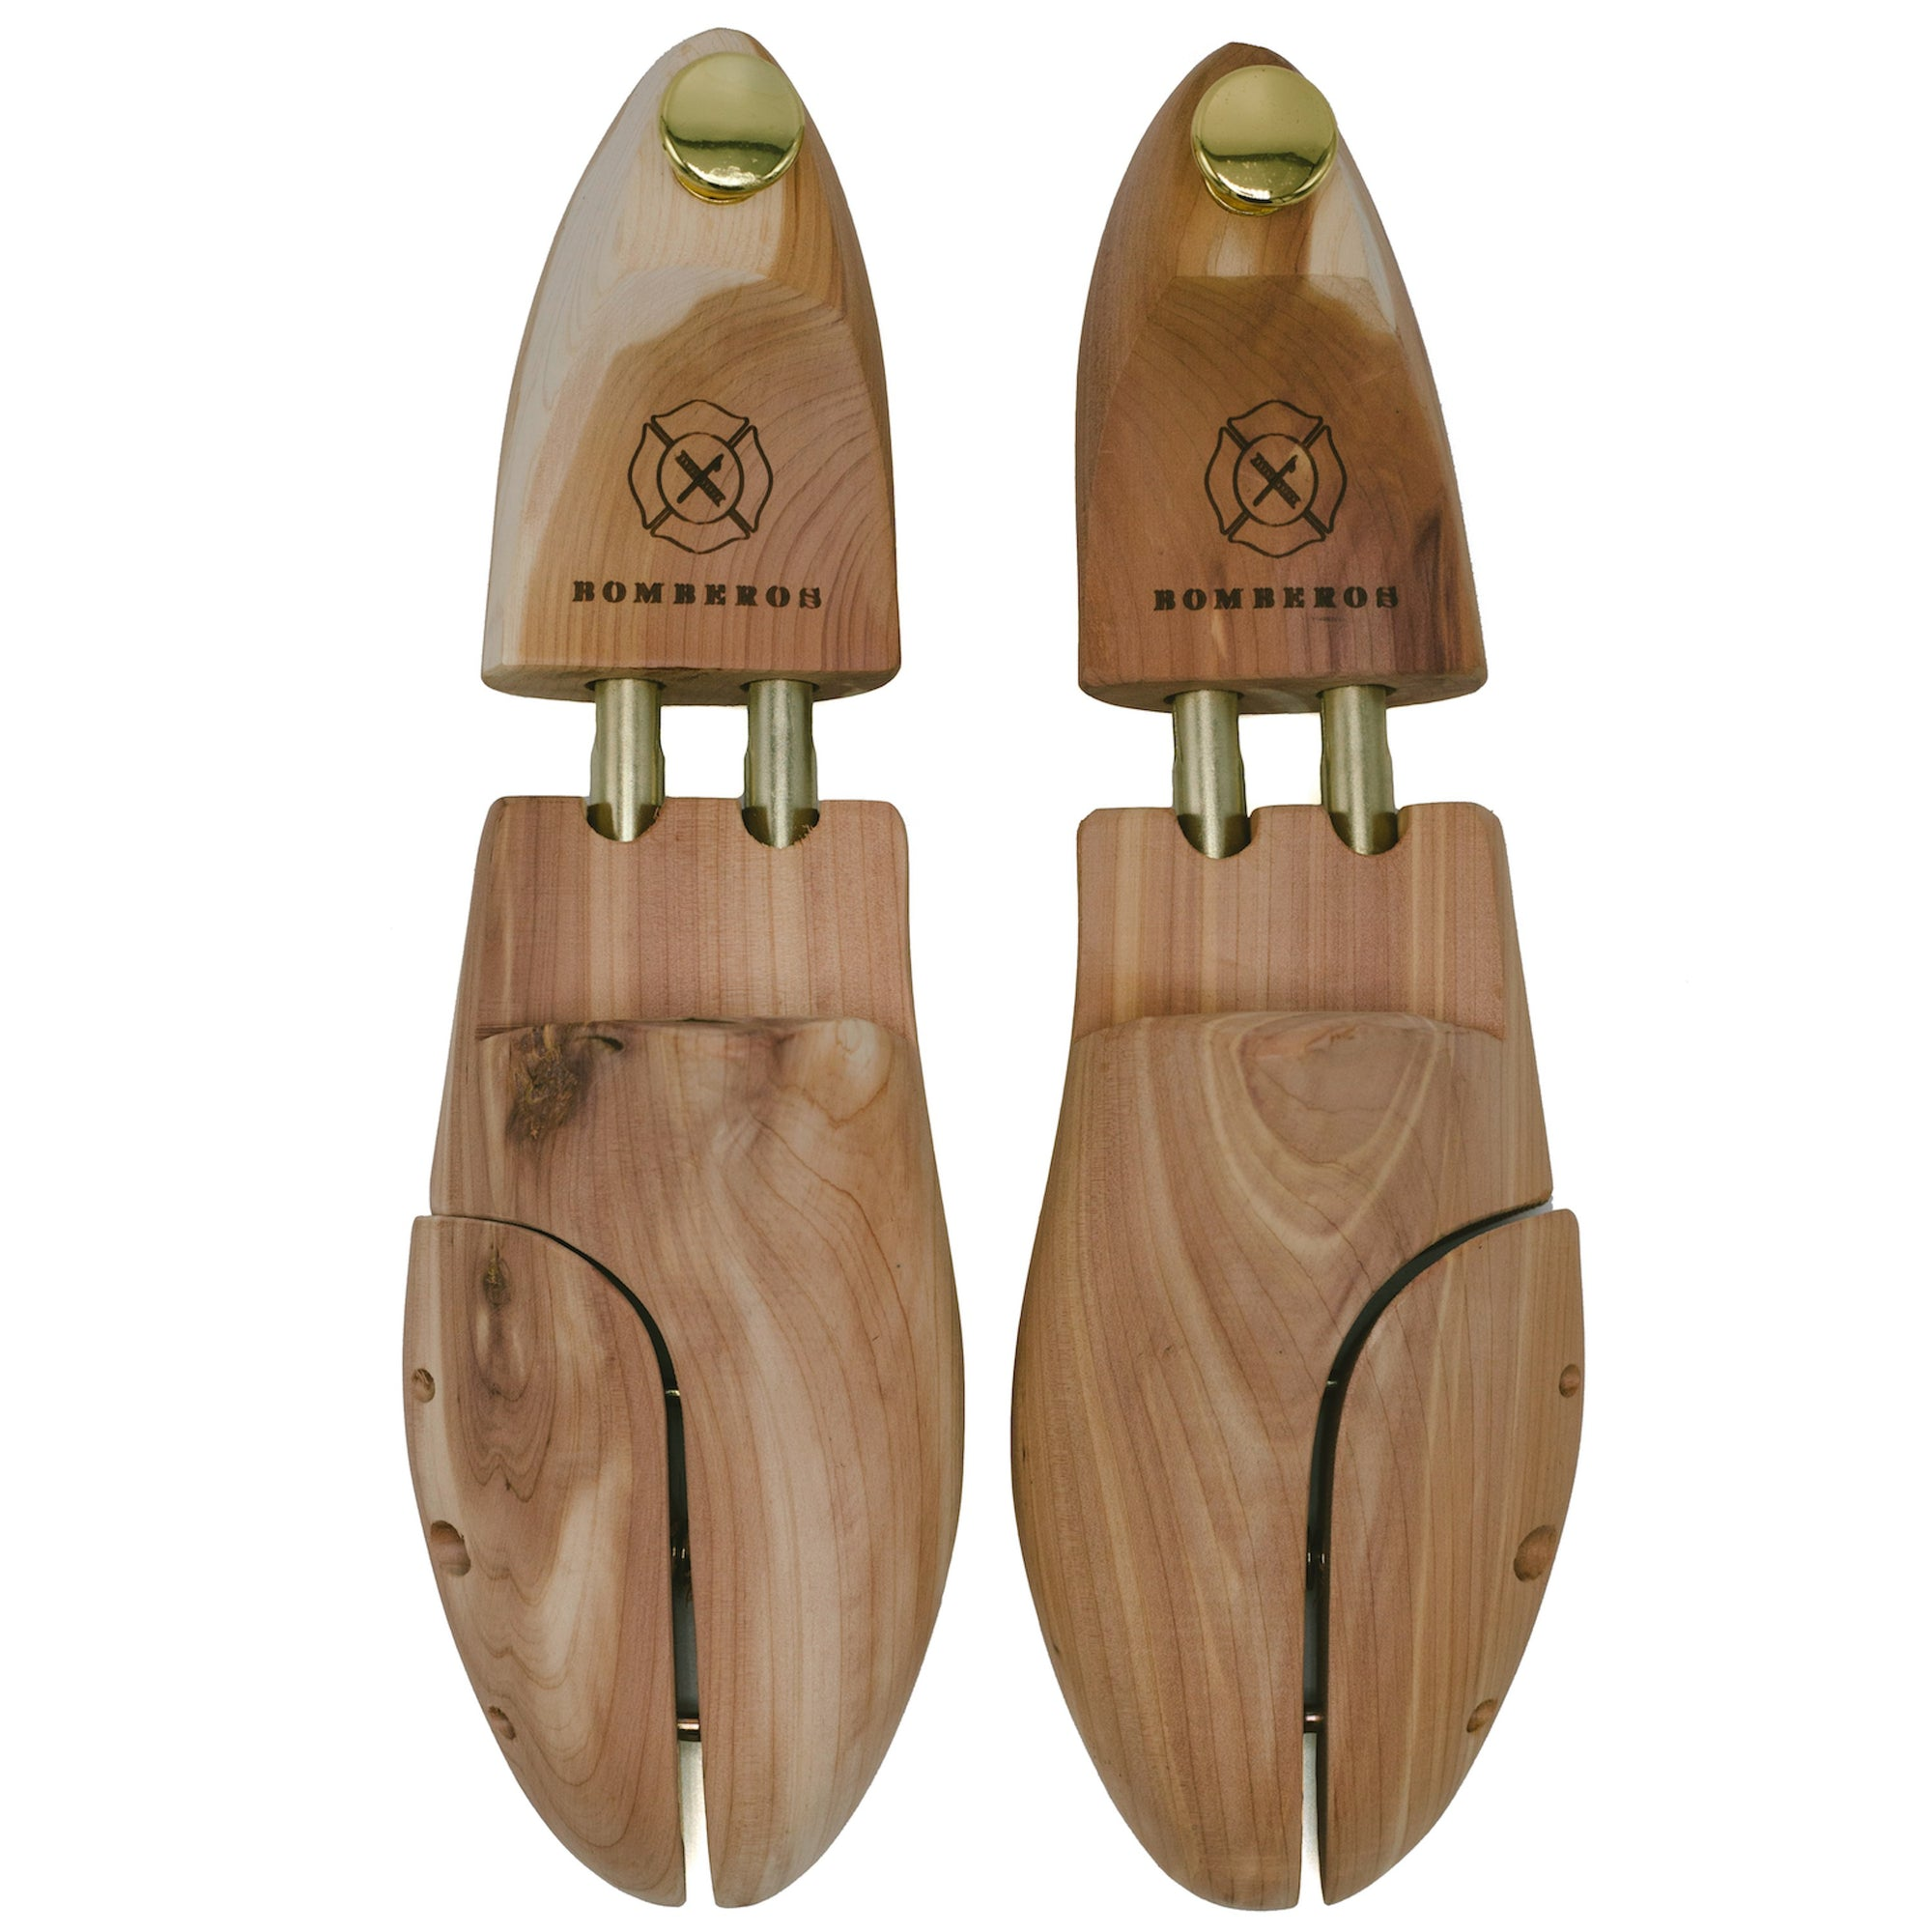 BOMBEROS Men's American Red Cedar Shoe Trees